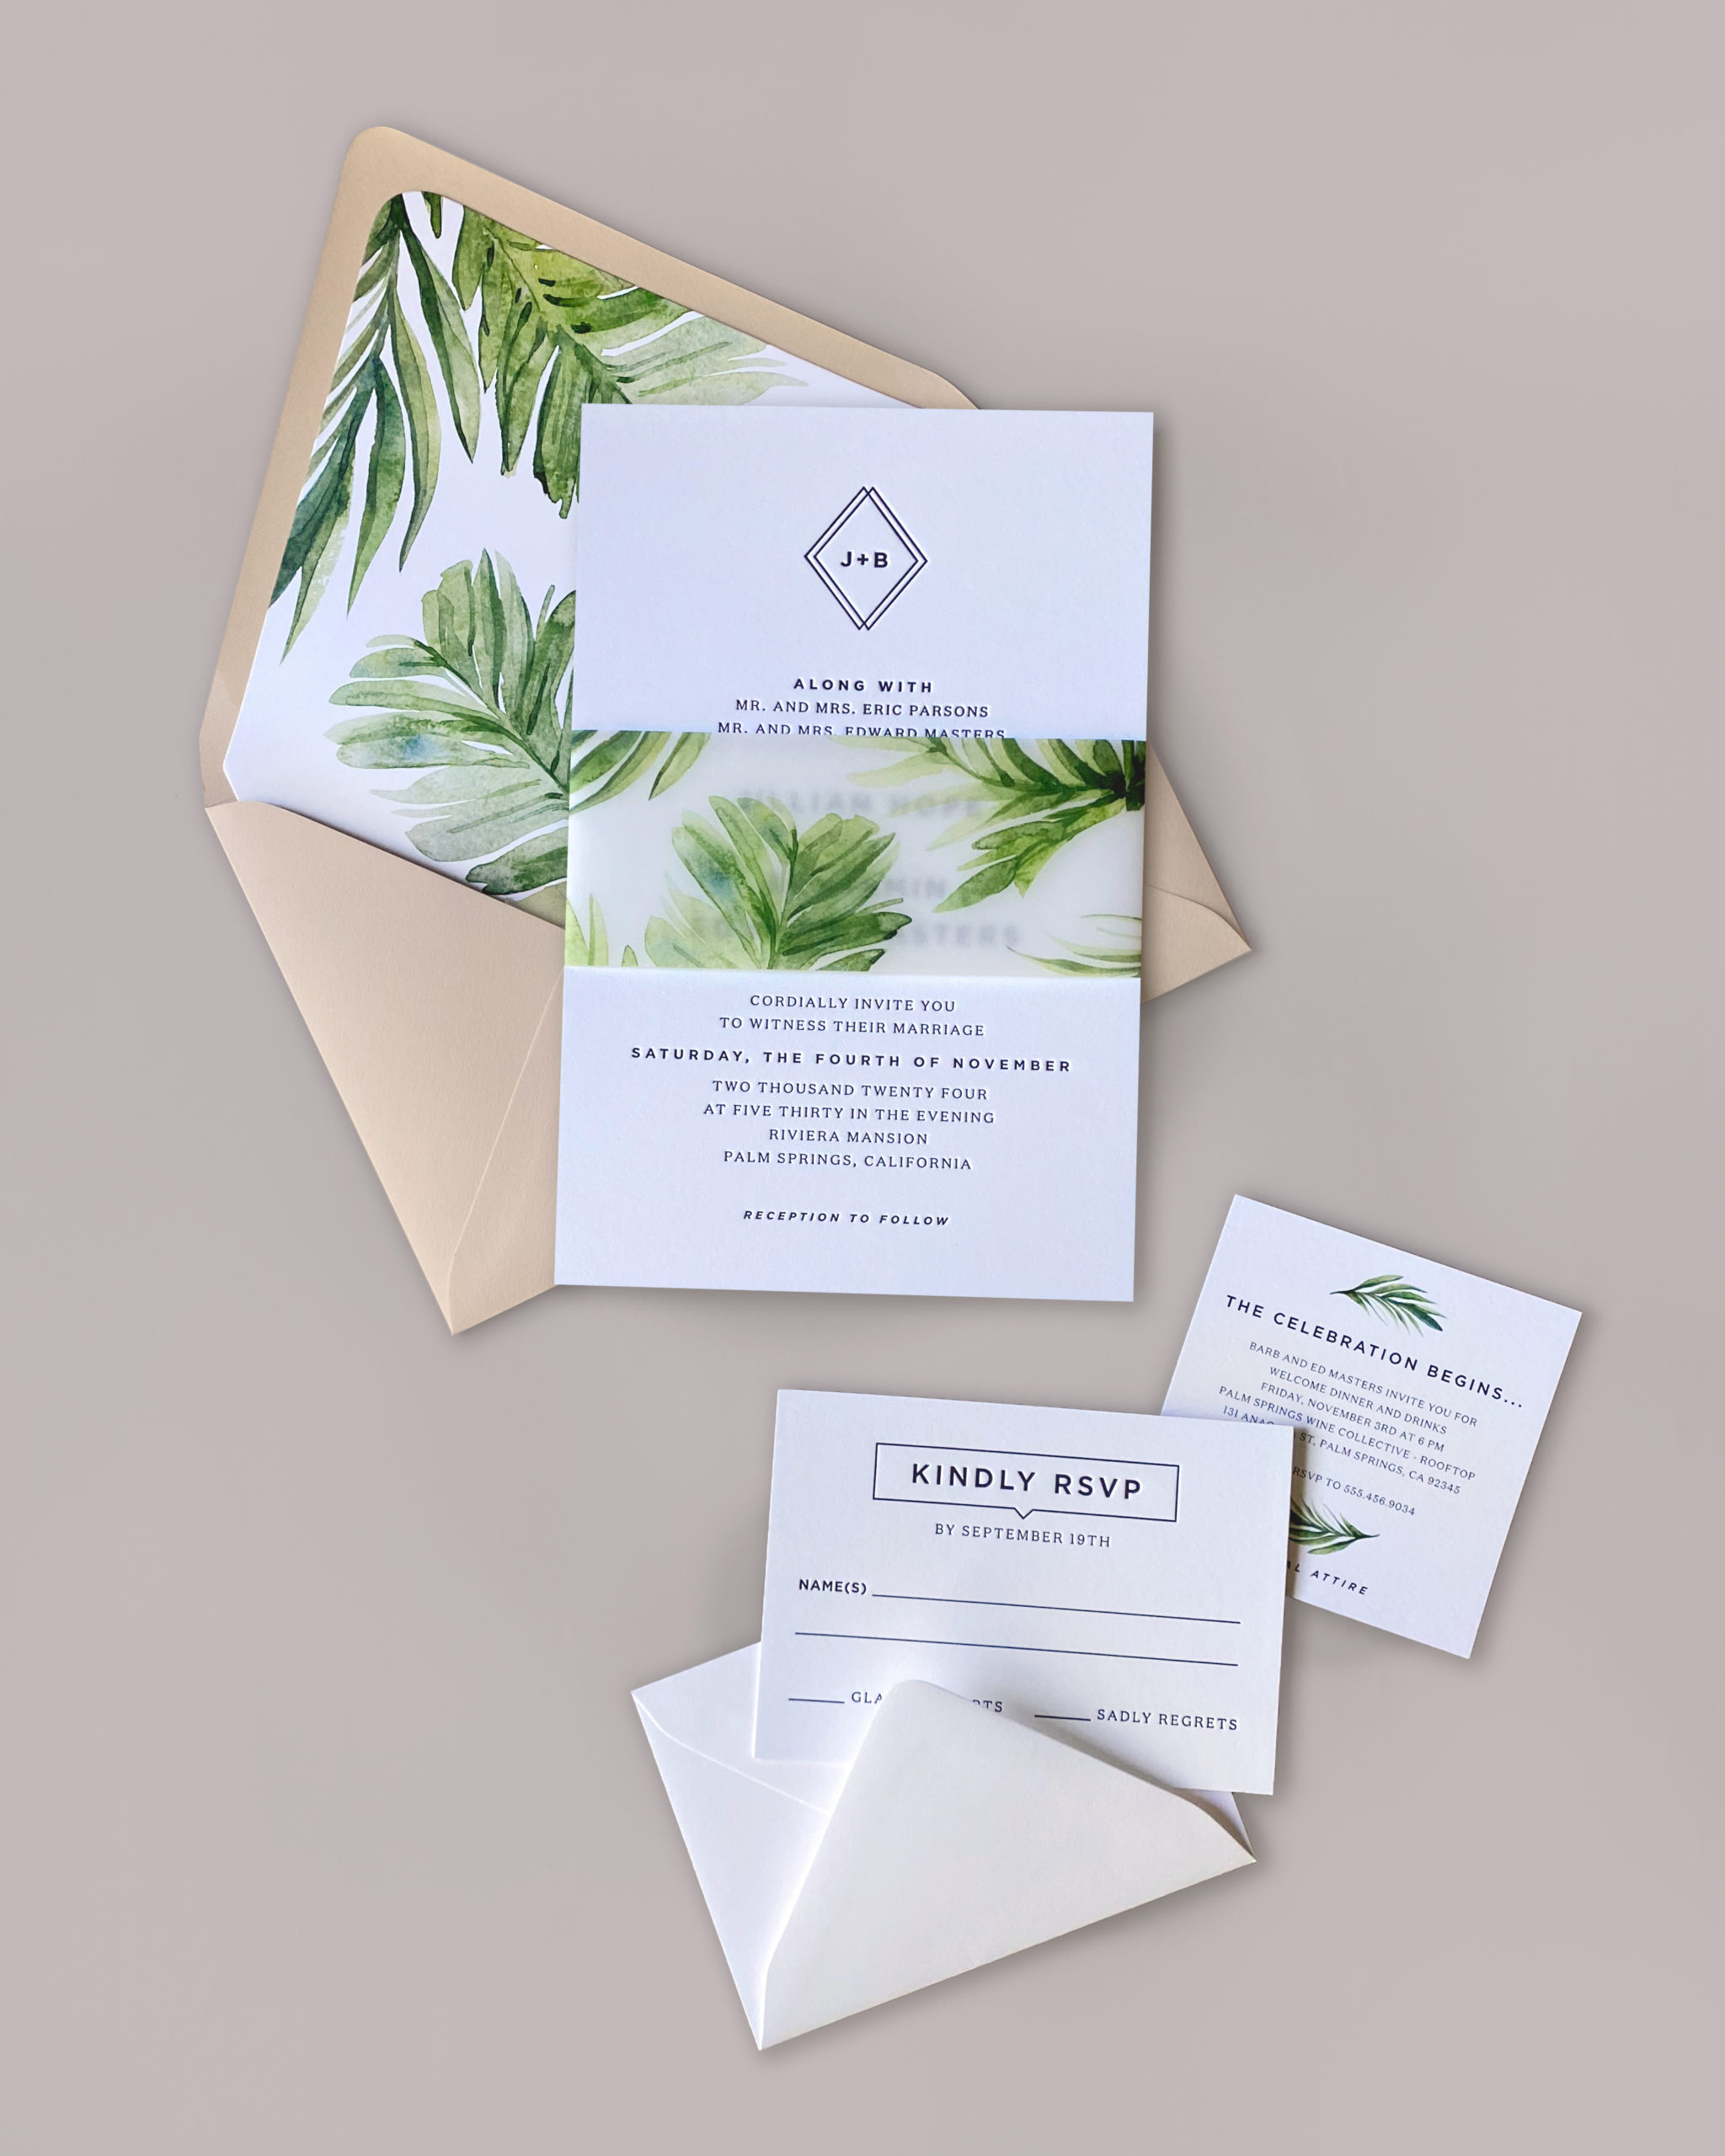 Jillian invitation features vellum band with palm fronds around a modern, traditional letterpress wedding invitation.  Available in Northern Virginia at Staccato.